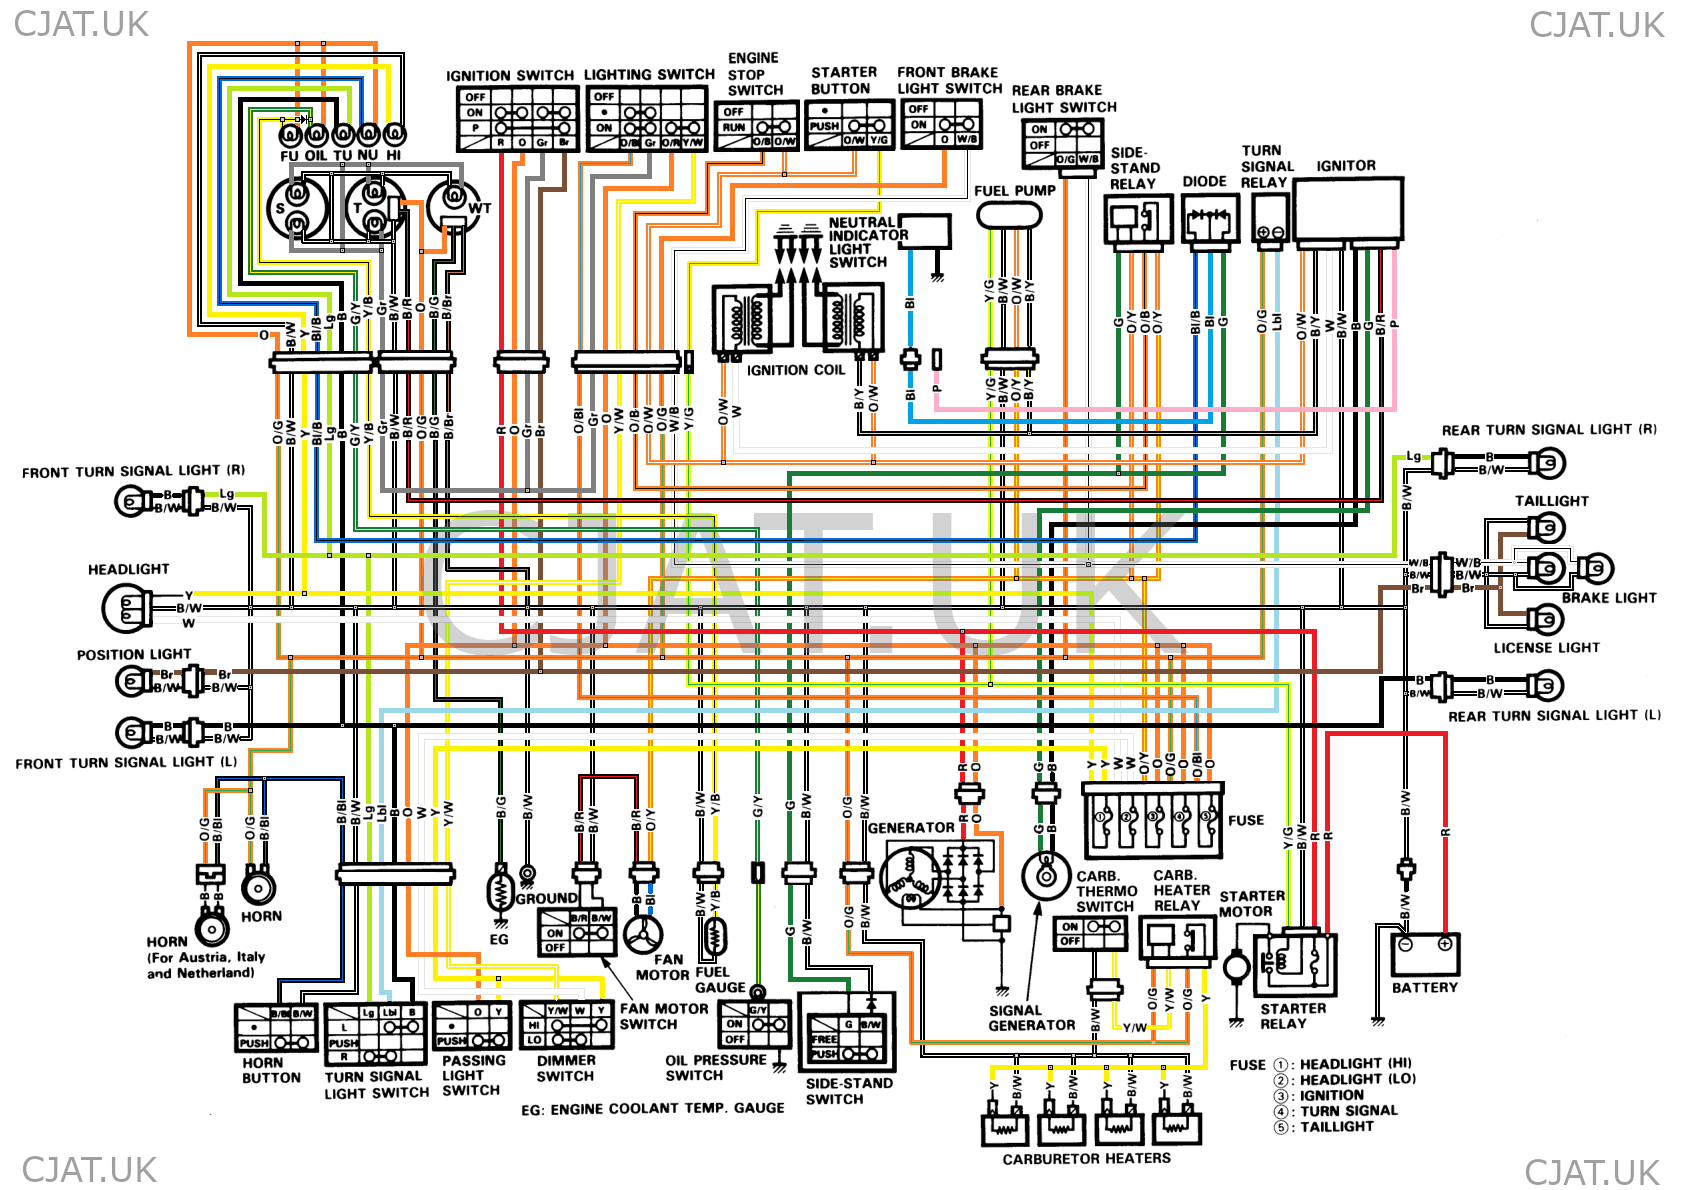 [ANLQ_8698]  DIAGRAM] Rf900r FULL Version HD Quality Wiring Diagram -  IDEAARTGRAFIK.CHEFSCUISINIERSAIN.FR | Rf900r Wiring Diagram |  | ideaartgrafik chefscuisiniersain fr